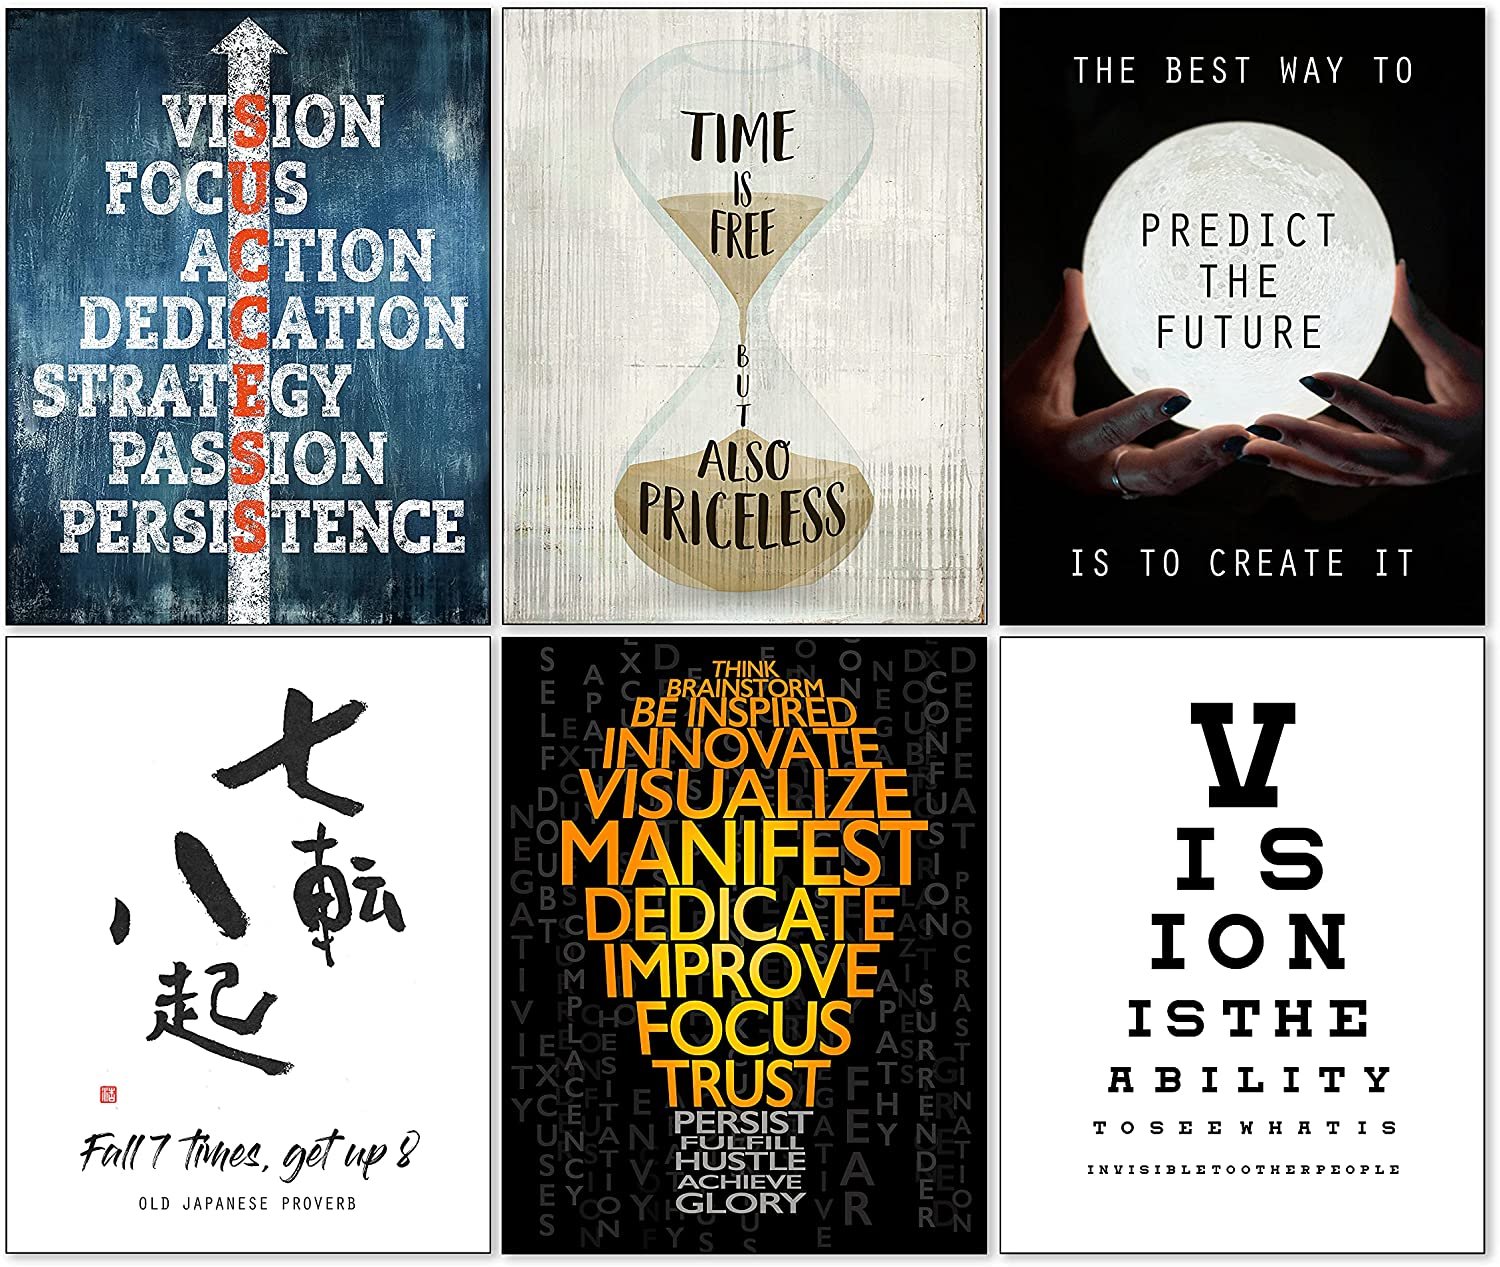 Motivational Wall Art for Office Decor & Home Positive Inspirational Quotes Posters 11x14 in. (Unframed Prints) Set of 6